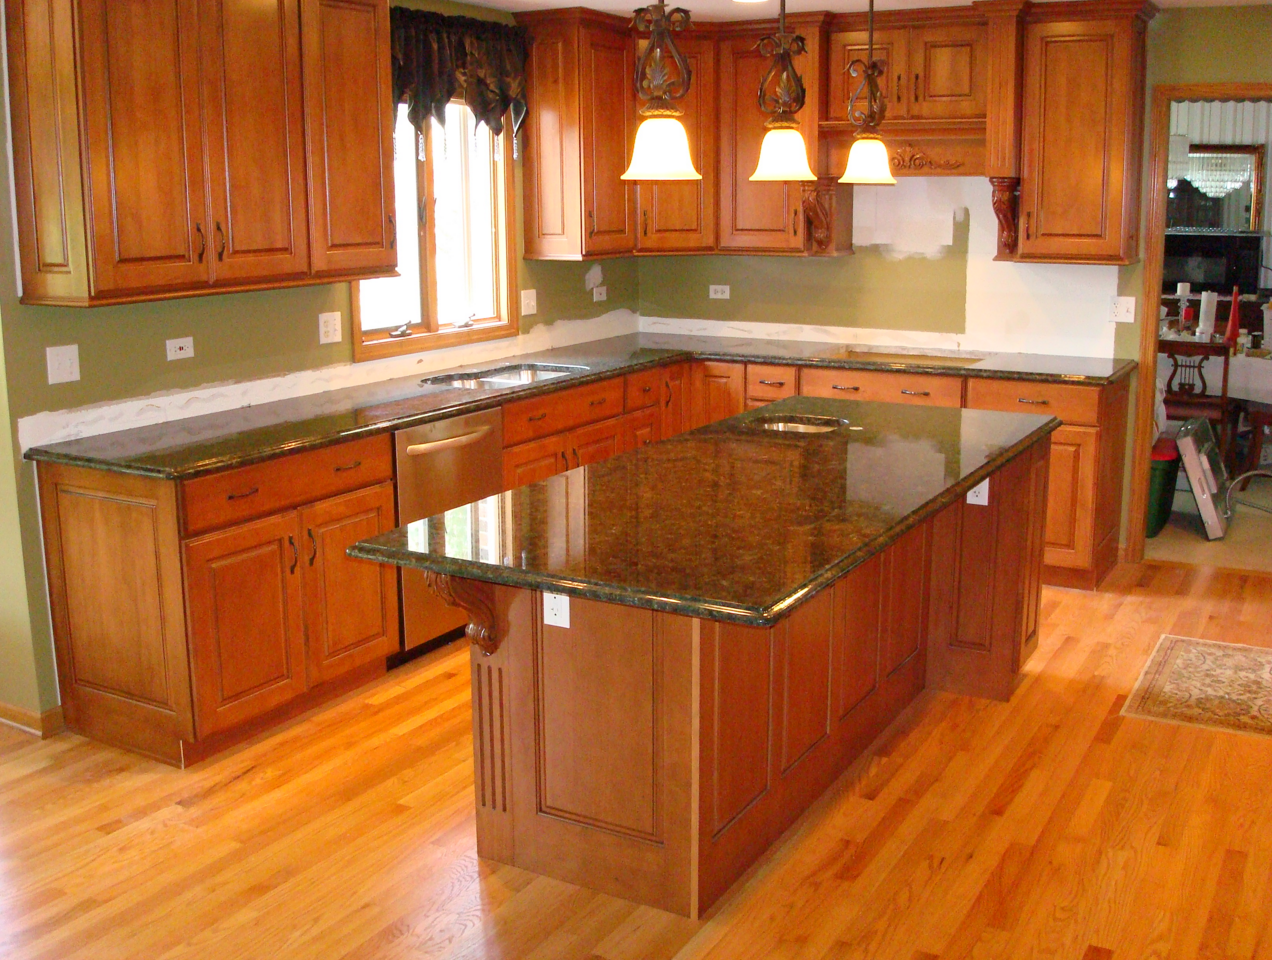 Kitchen Repairs And Remodeling   HandymanInNJ.com   Au0026E Home Services LLC,  Parsippany,